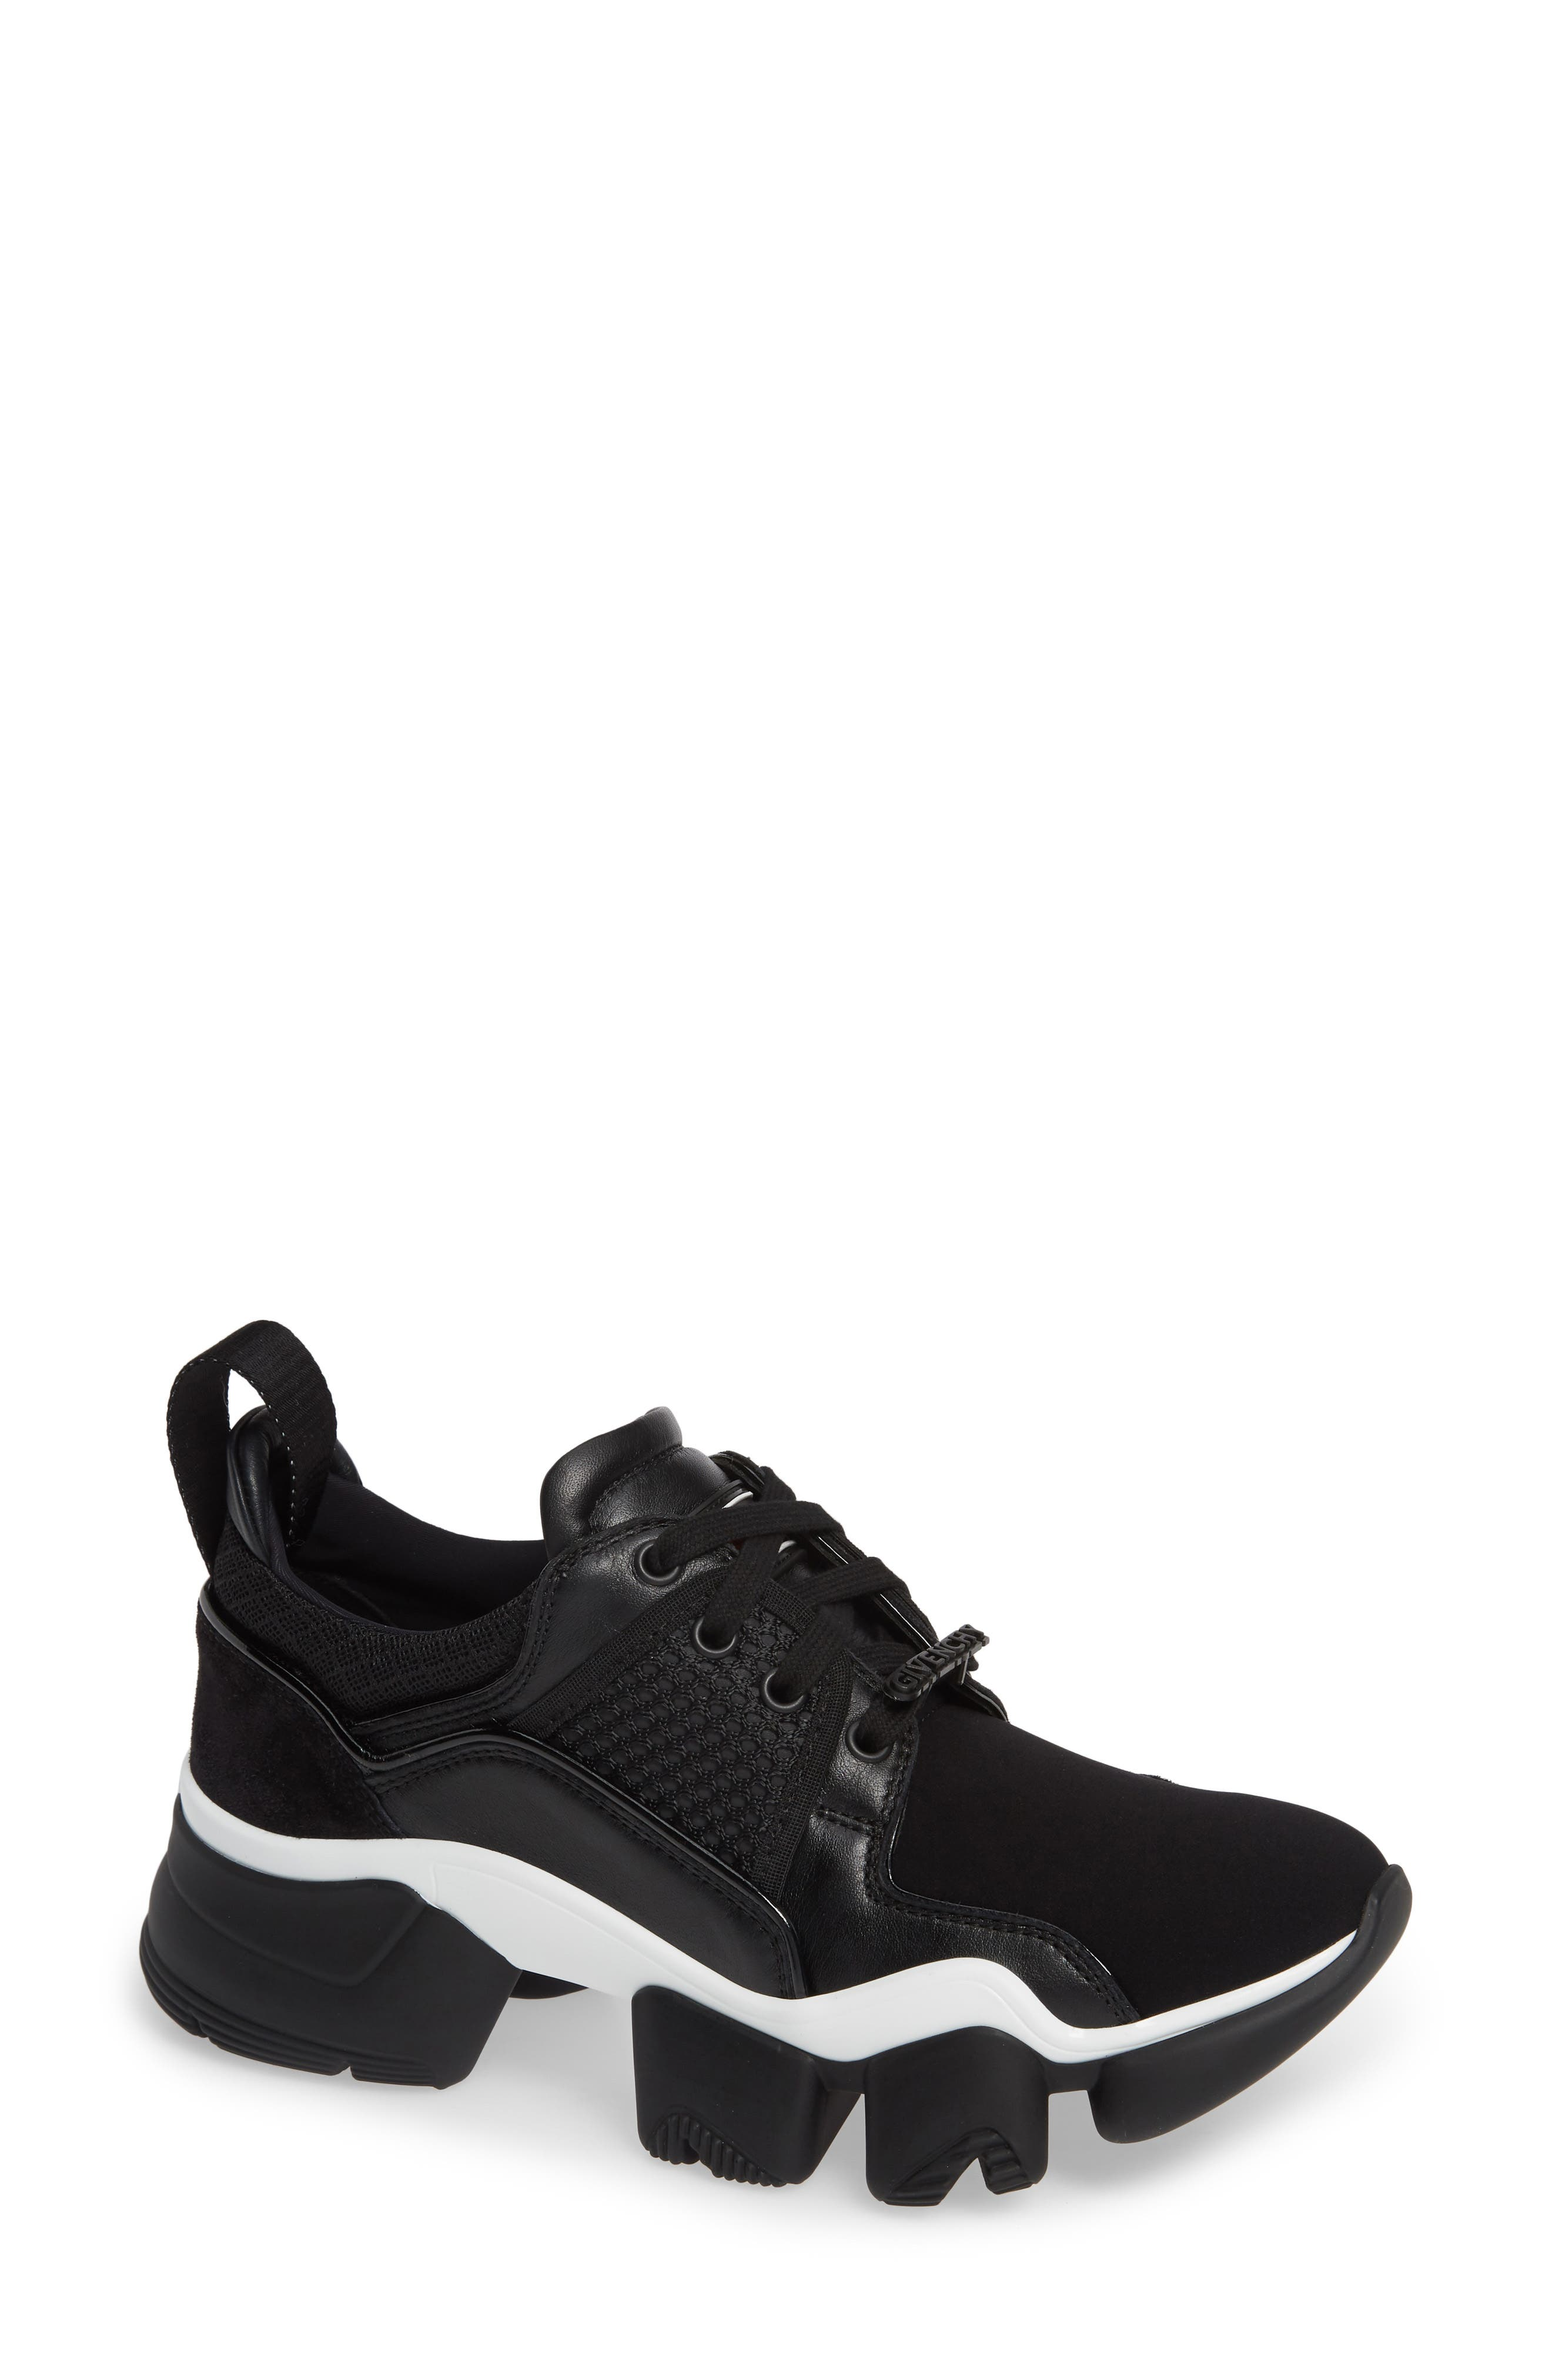 Givenchy Jaw Sneaker, Black